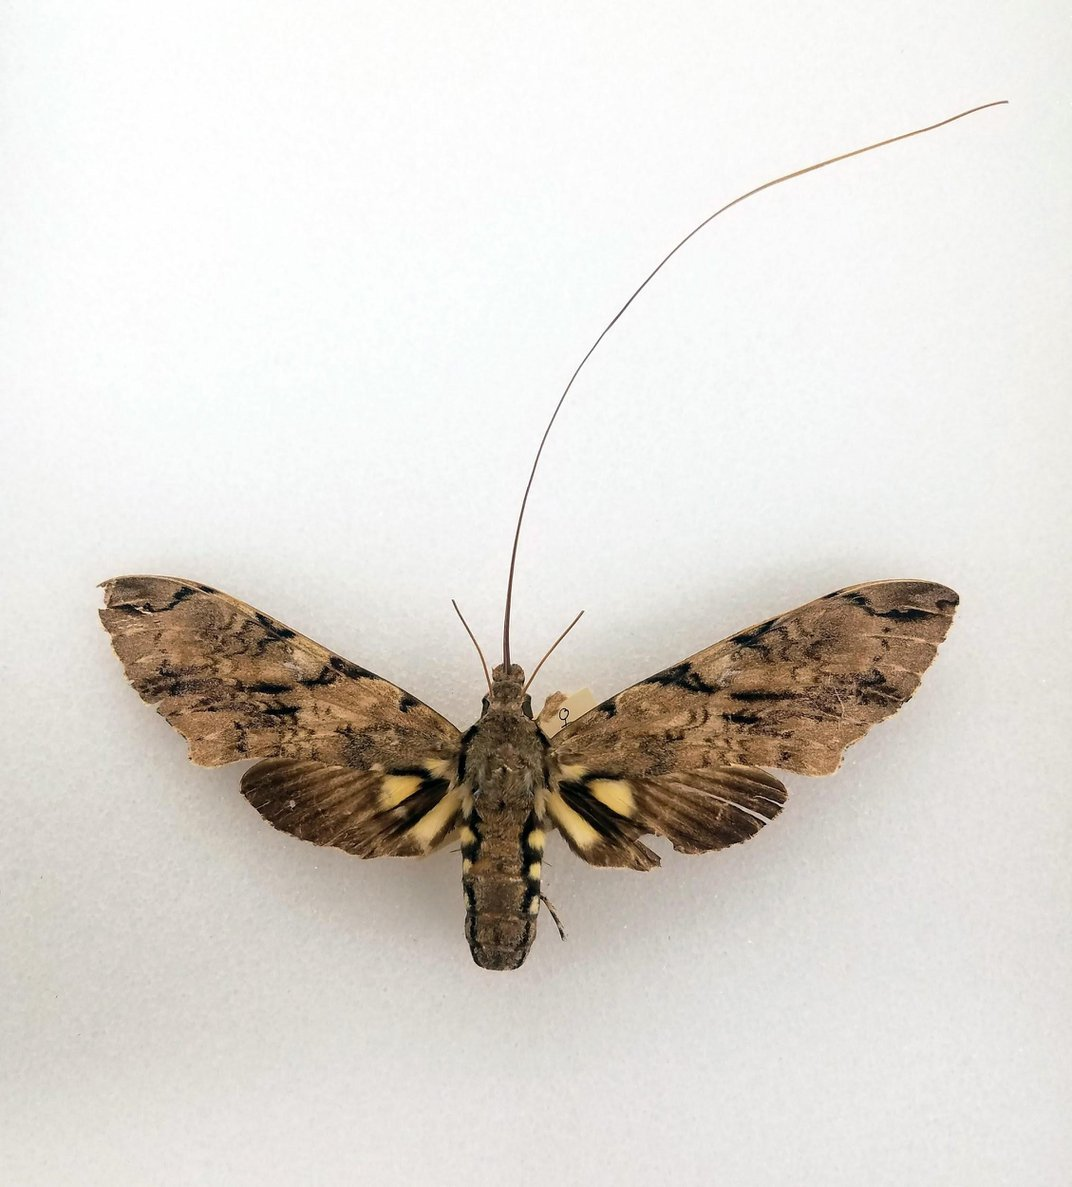 Preserved Morgan's sphinx moth on a white background